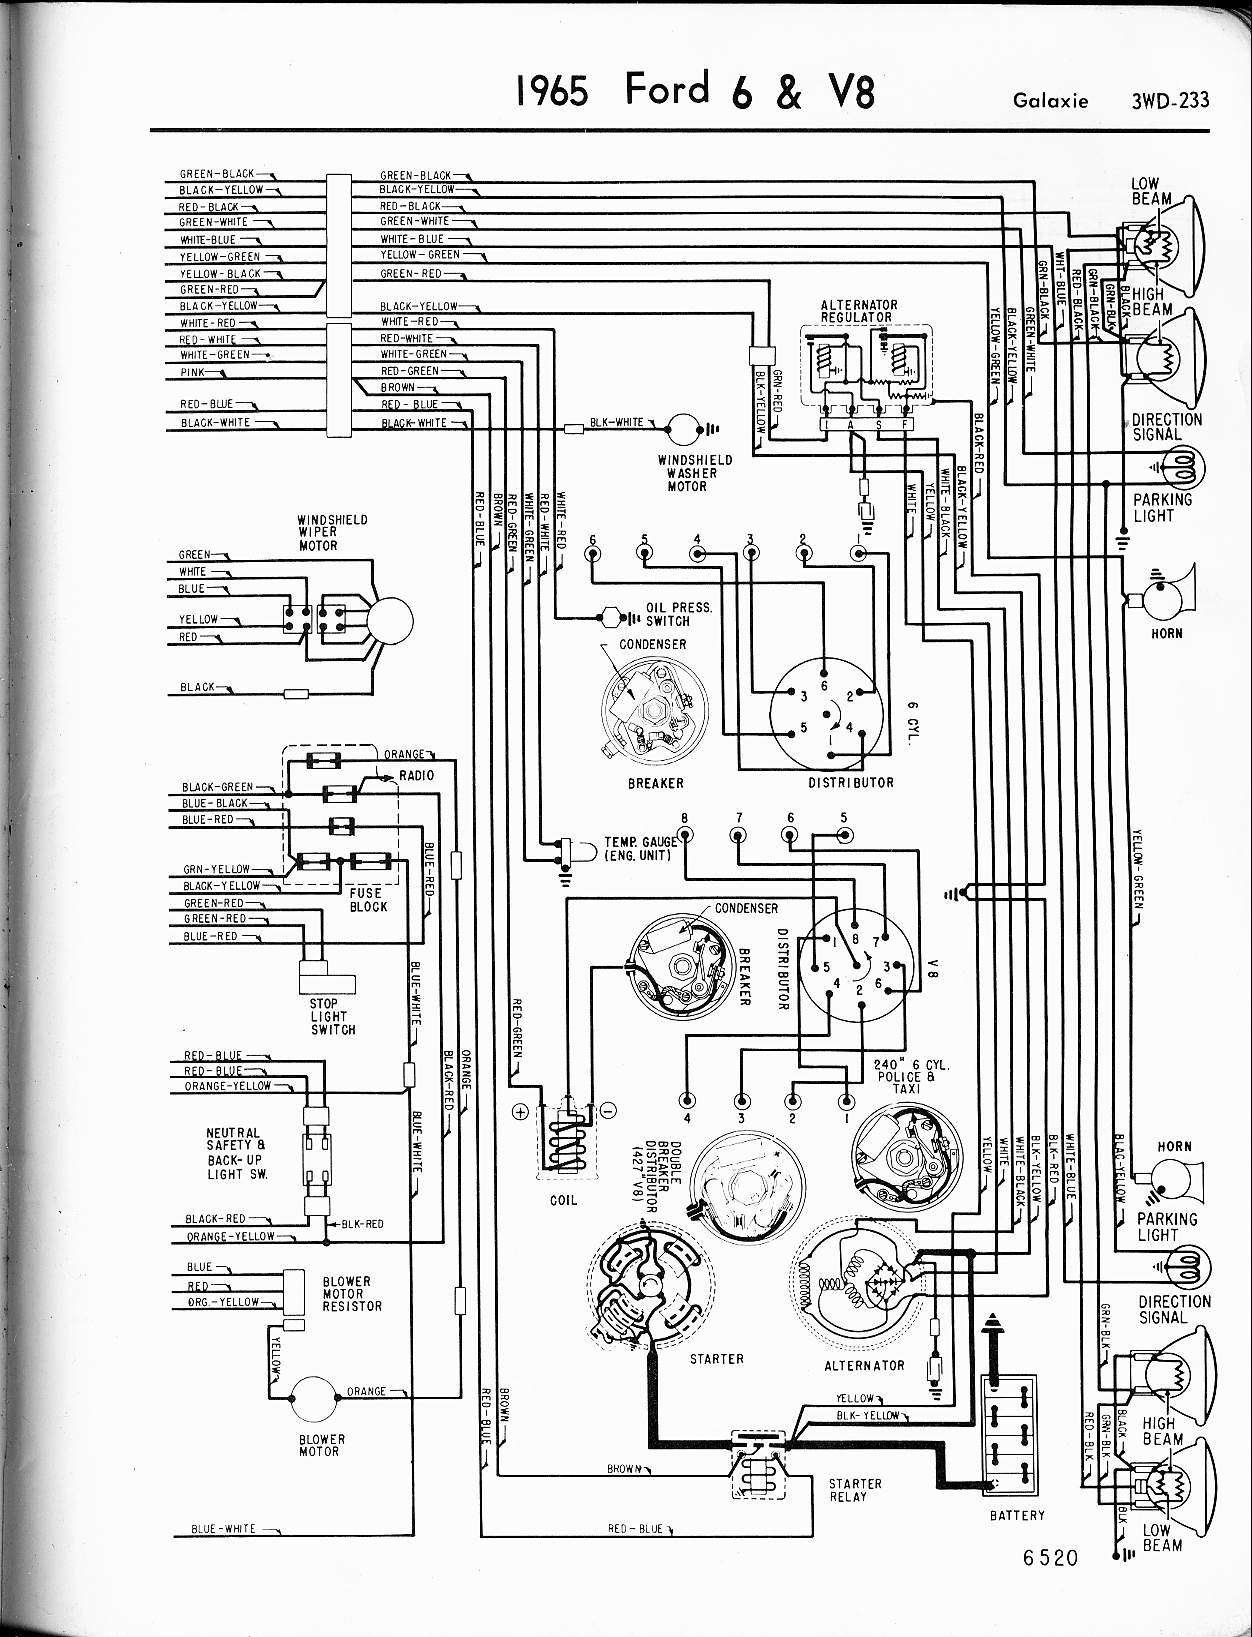 57-65 ford wiring diagrams,Wiring diagram,Wiring Diagrams Ford